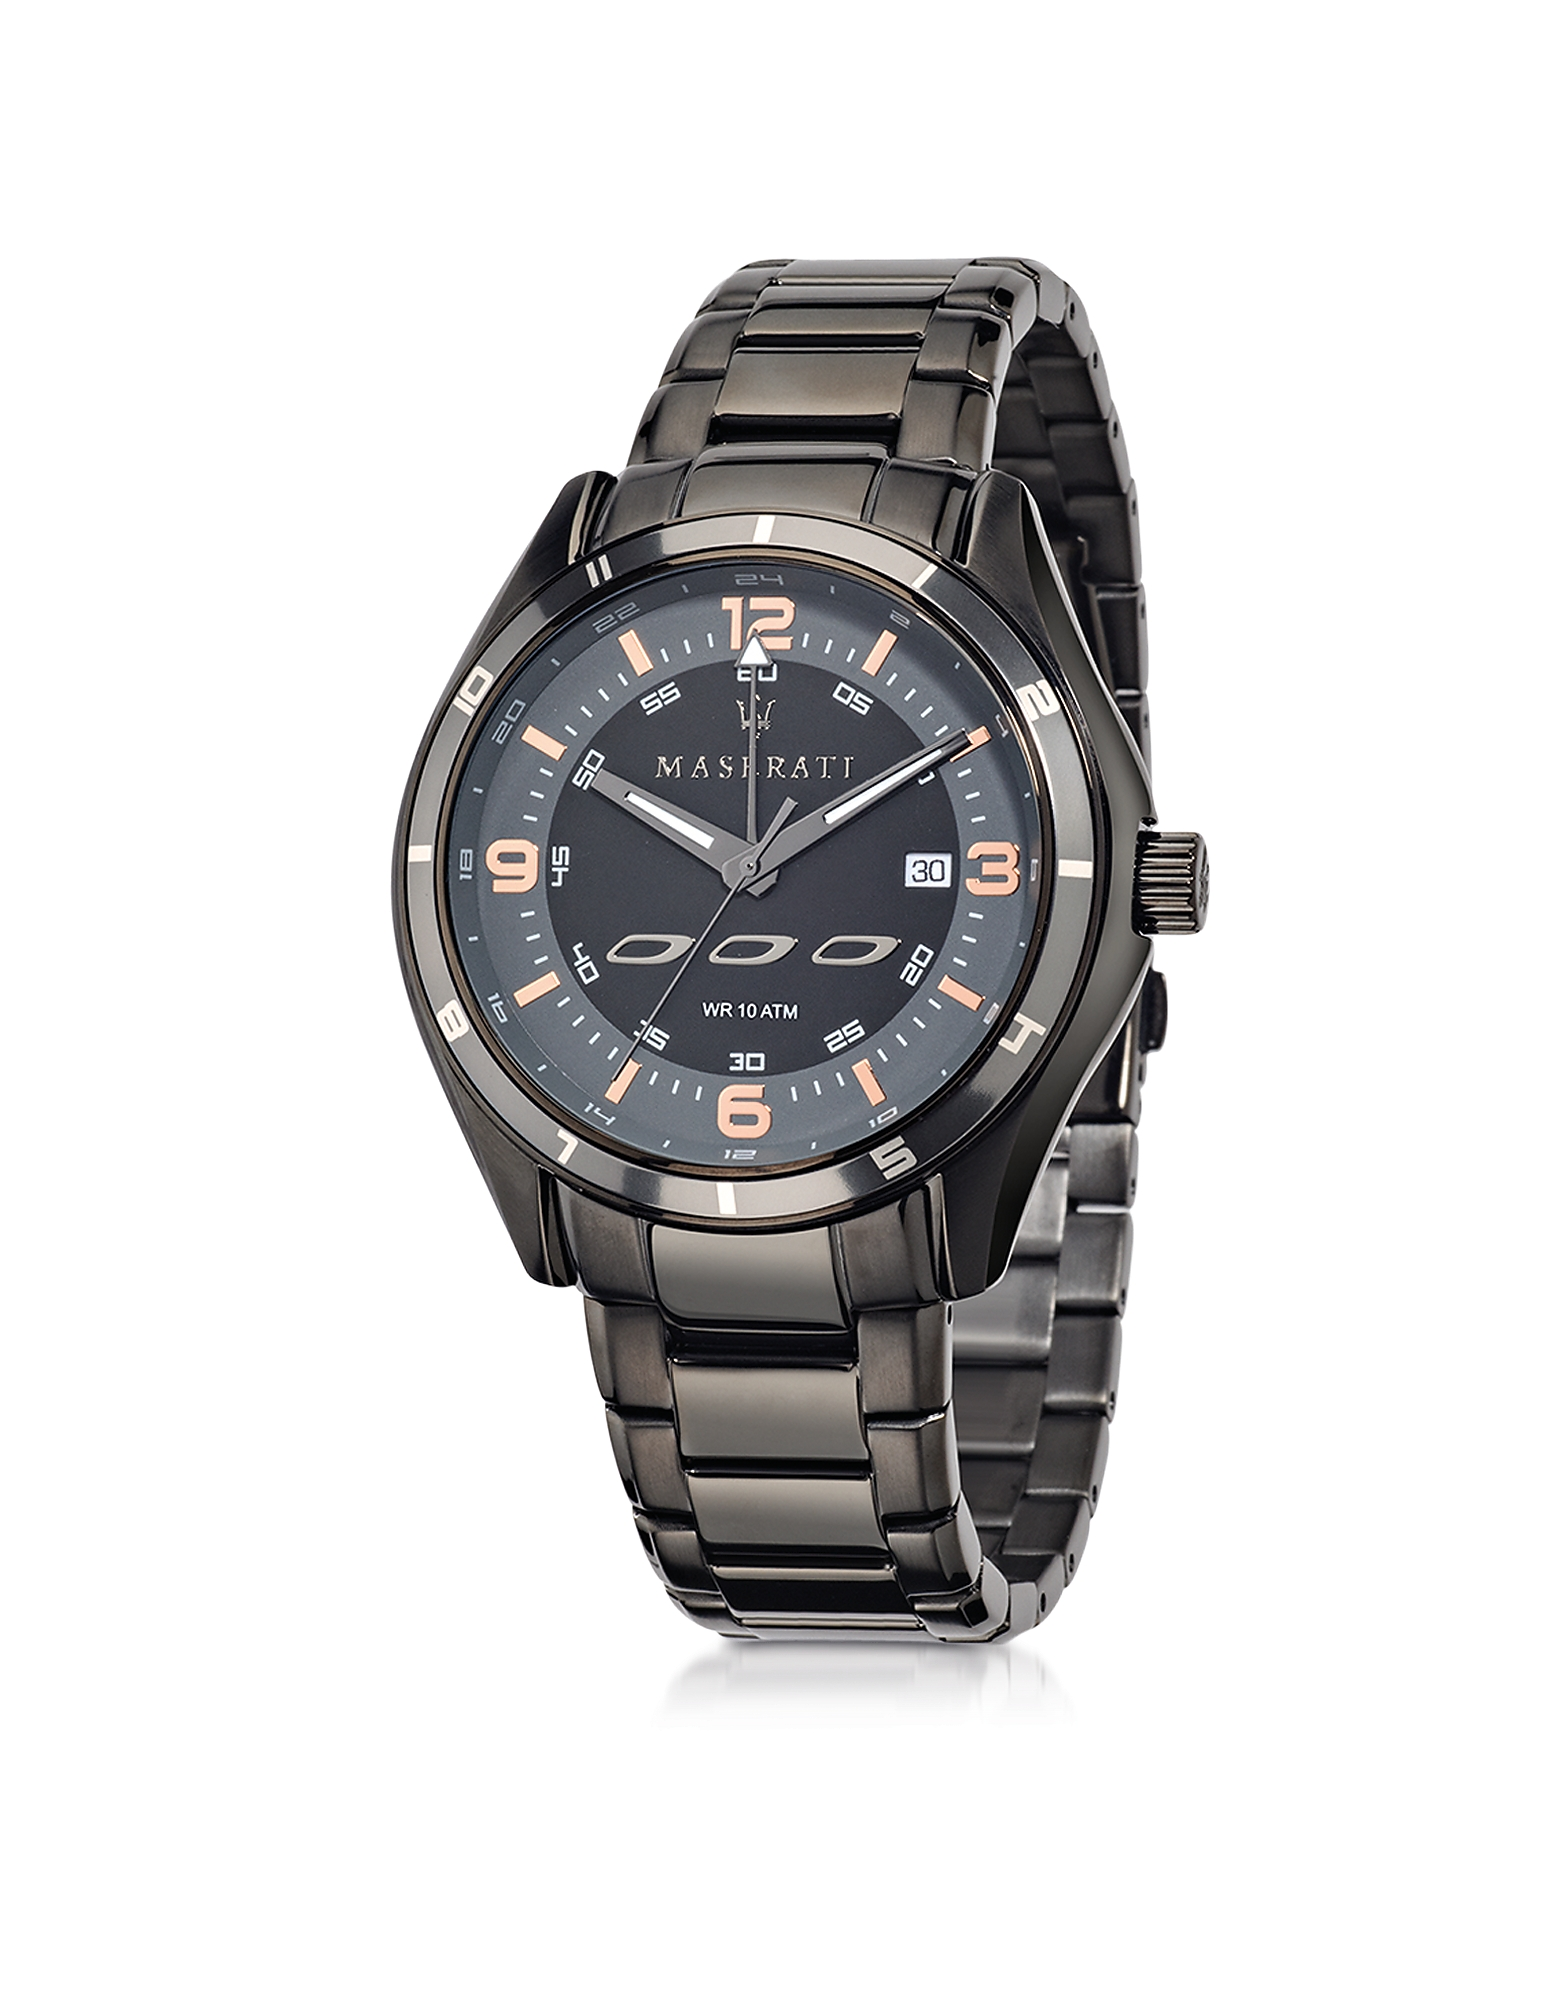 Maserati Men's Watches, Sorpasso Black Stainless Steel Men's Watch